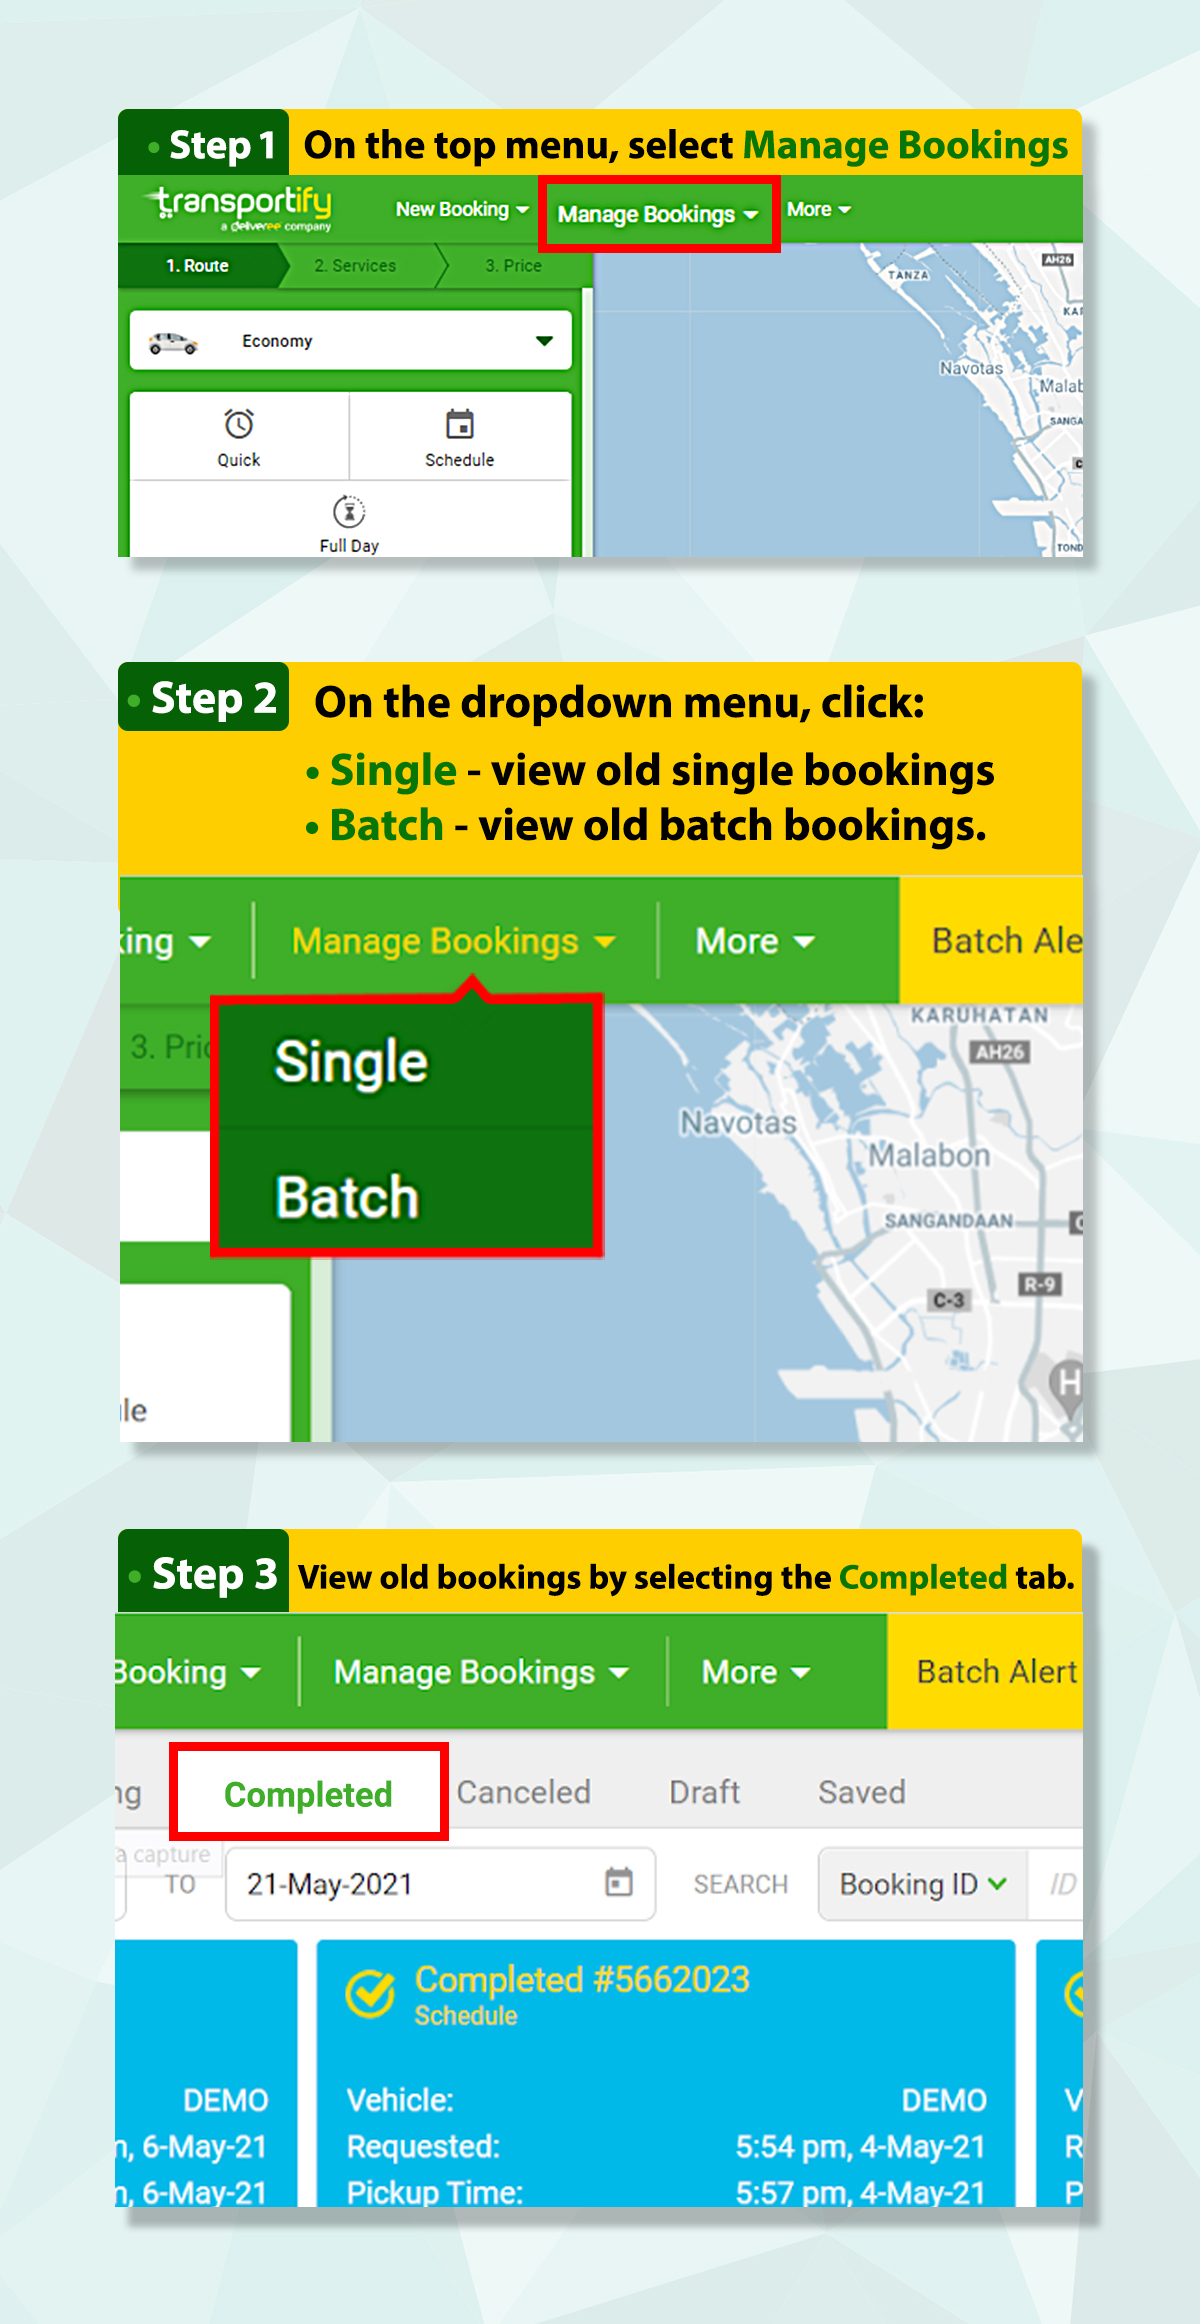 How to View Old Bookings - Webapp